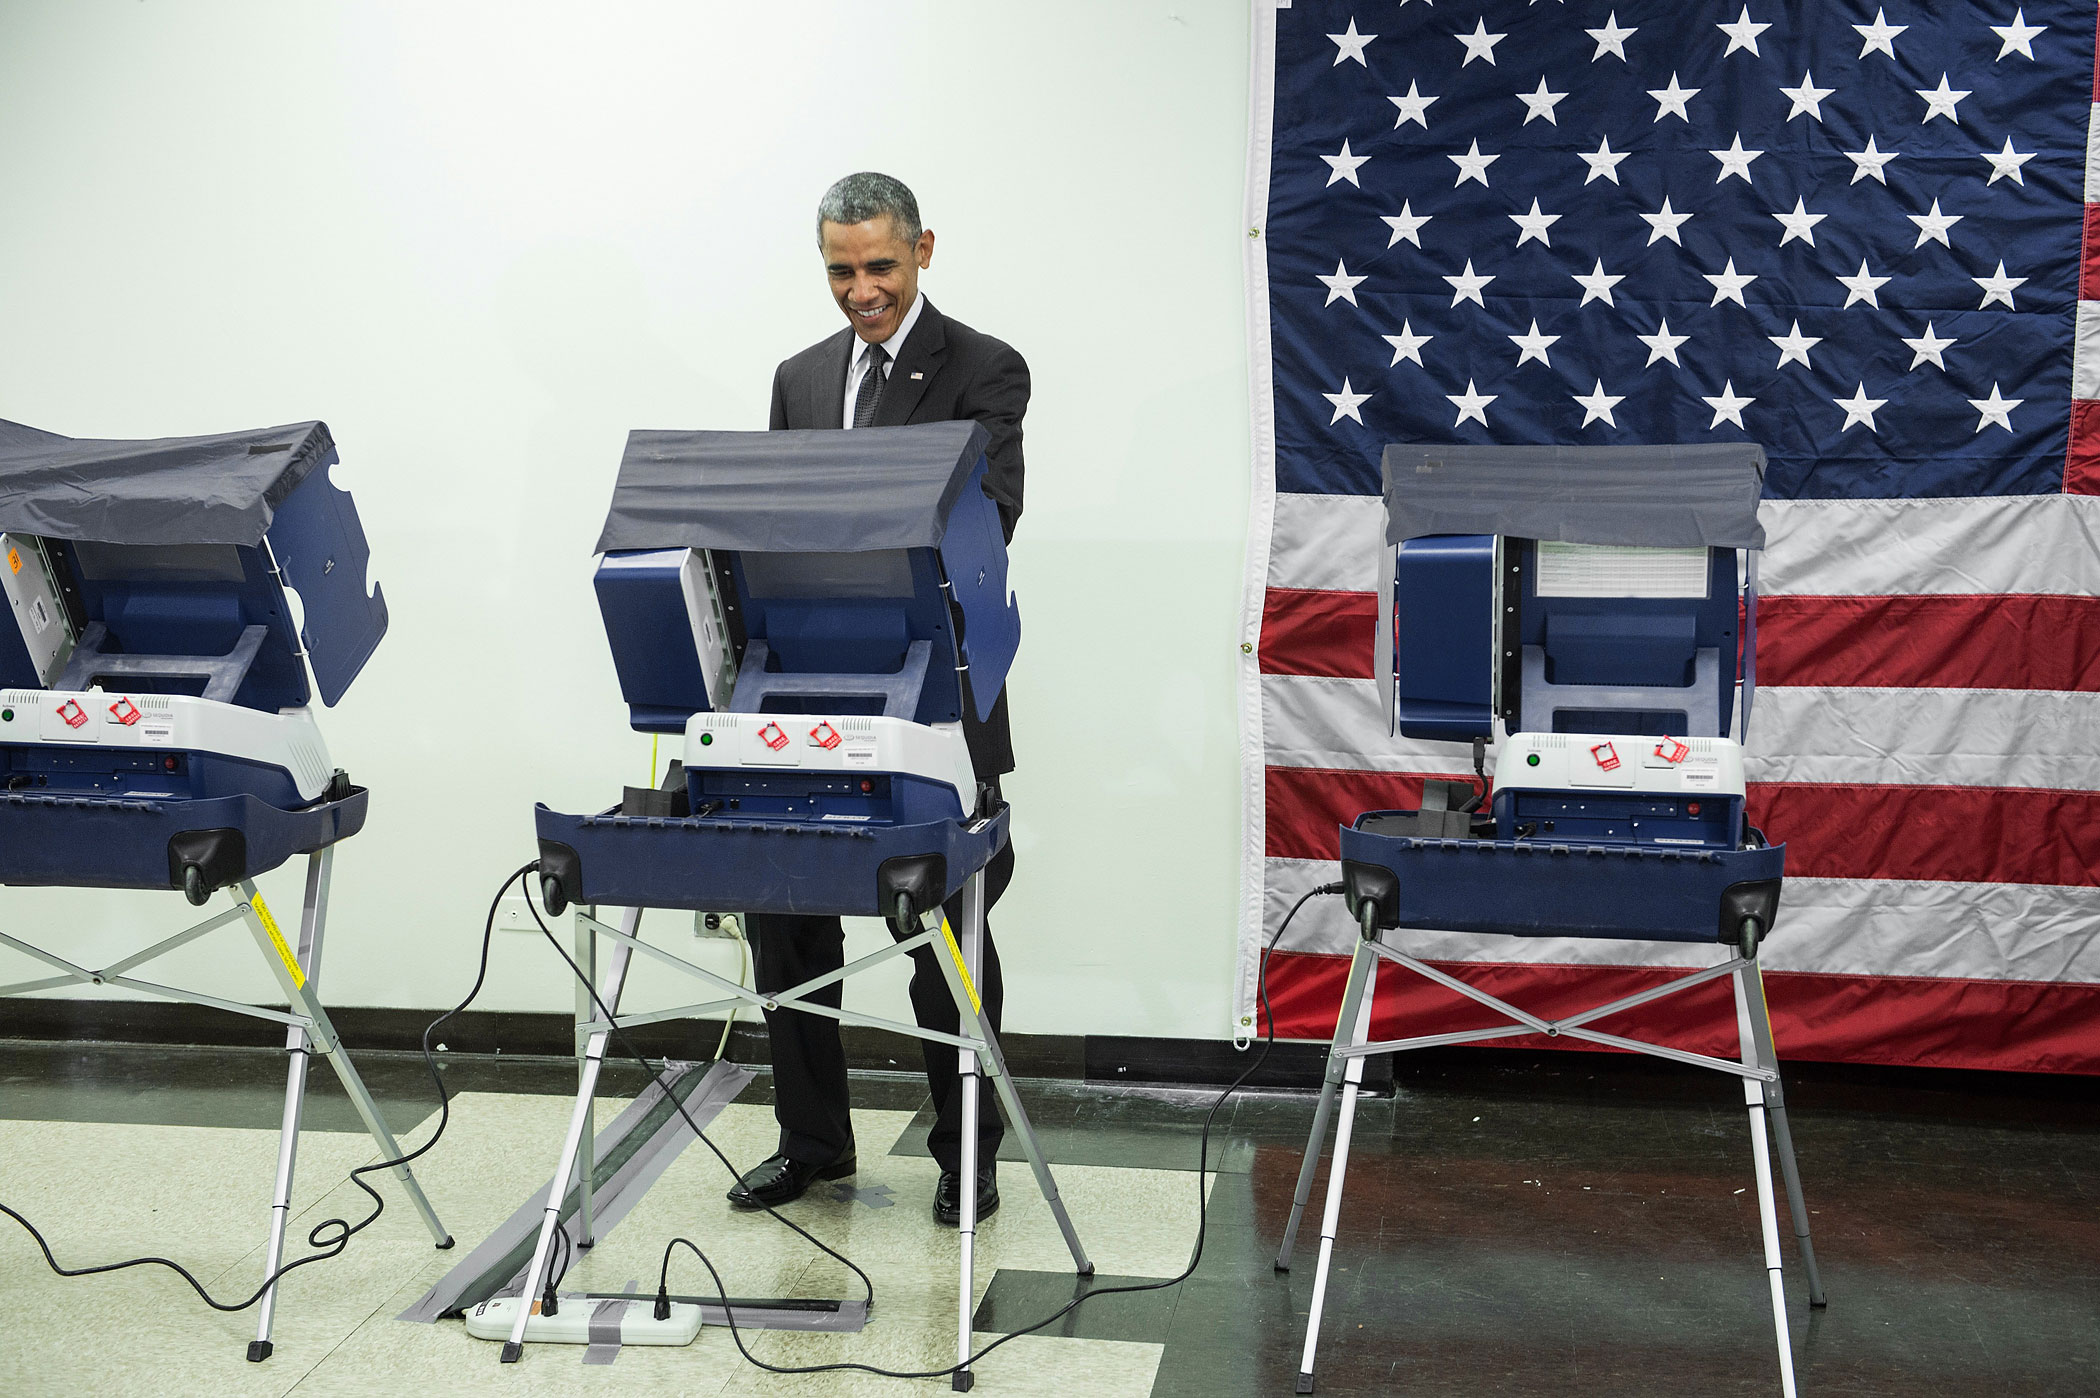 President Barack Obama casts a ballot in early voting for the 2014 midterm elections at the Dr. Martin Luther King Community Service Center October 20, 2014 in Chicago, Illinois.